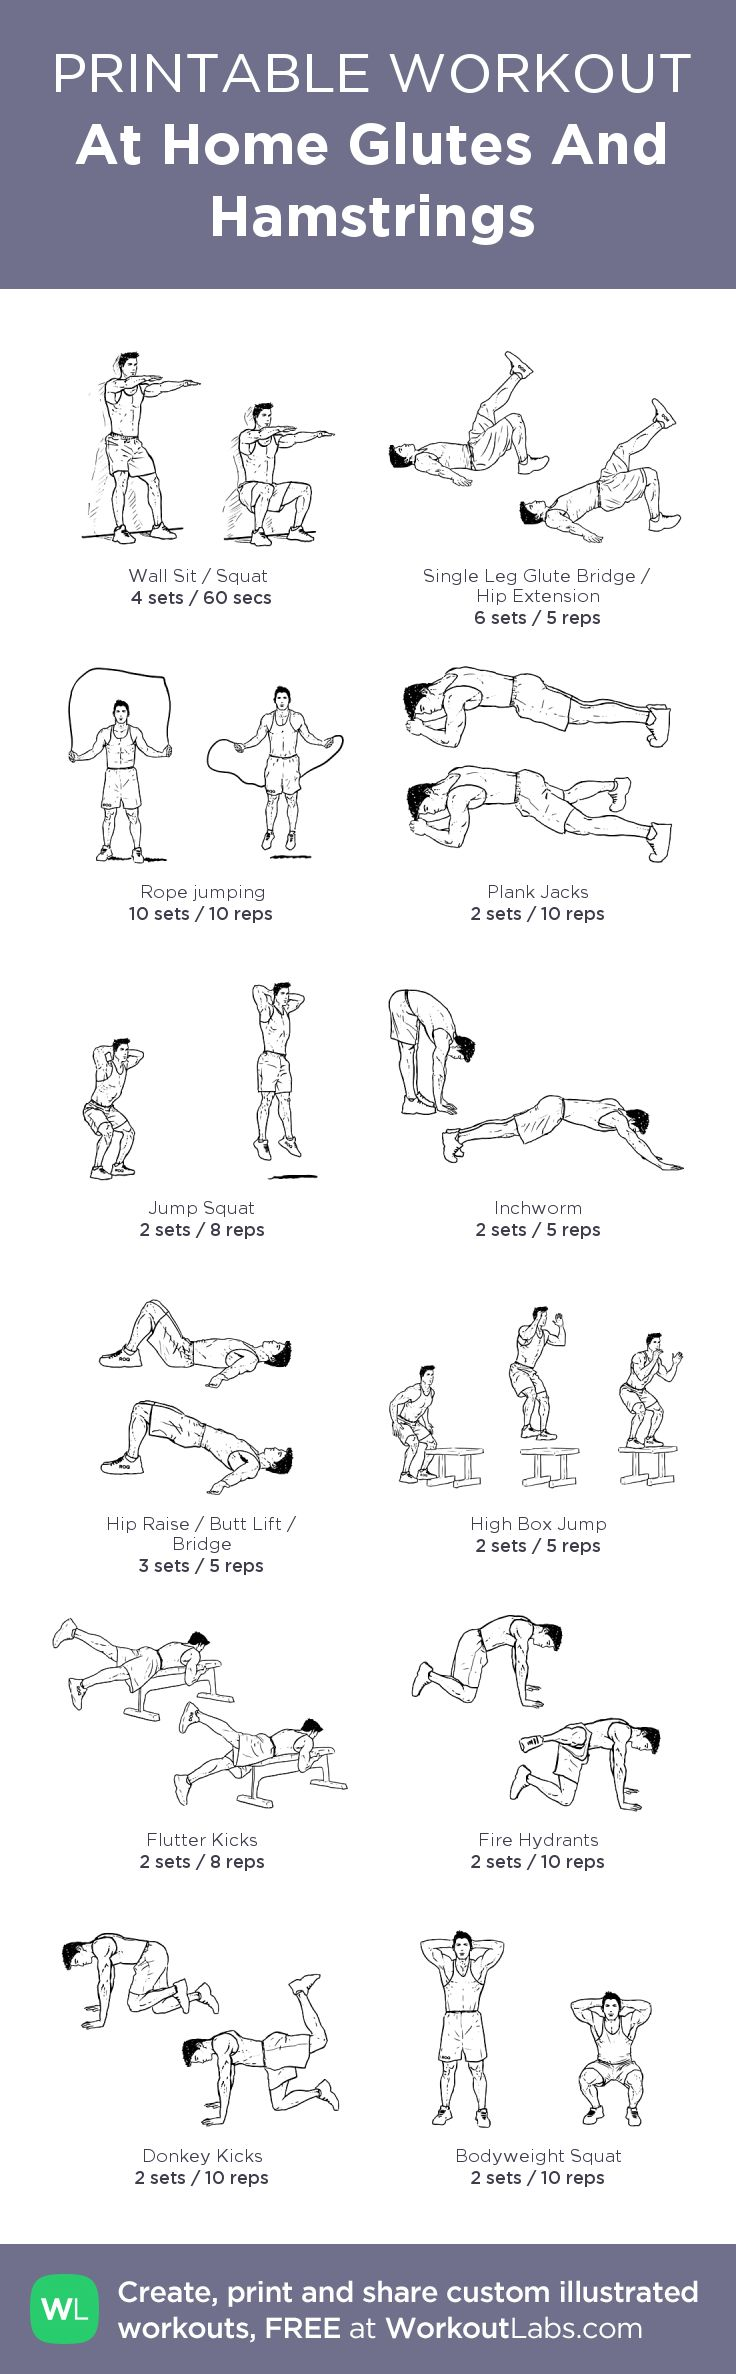 Hamstrings exercises at home